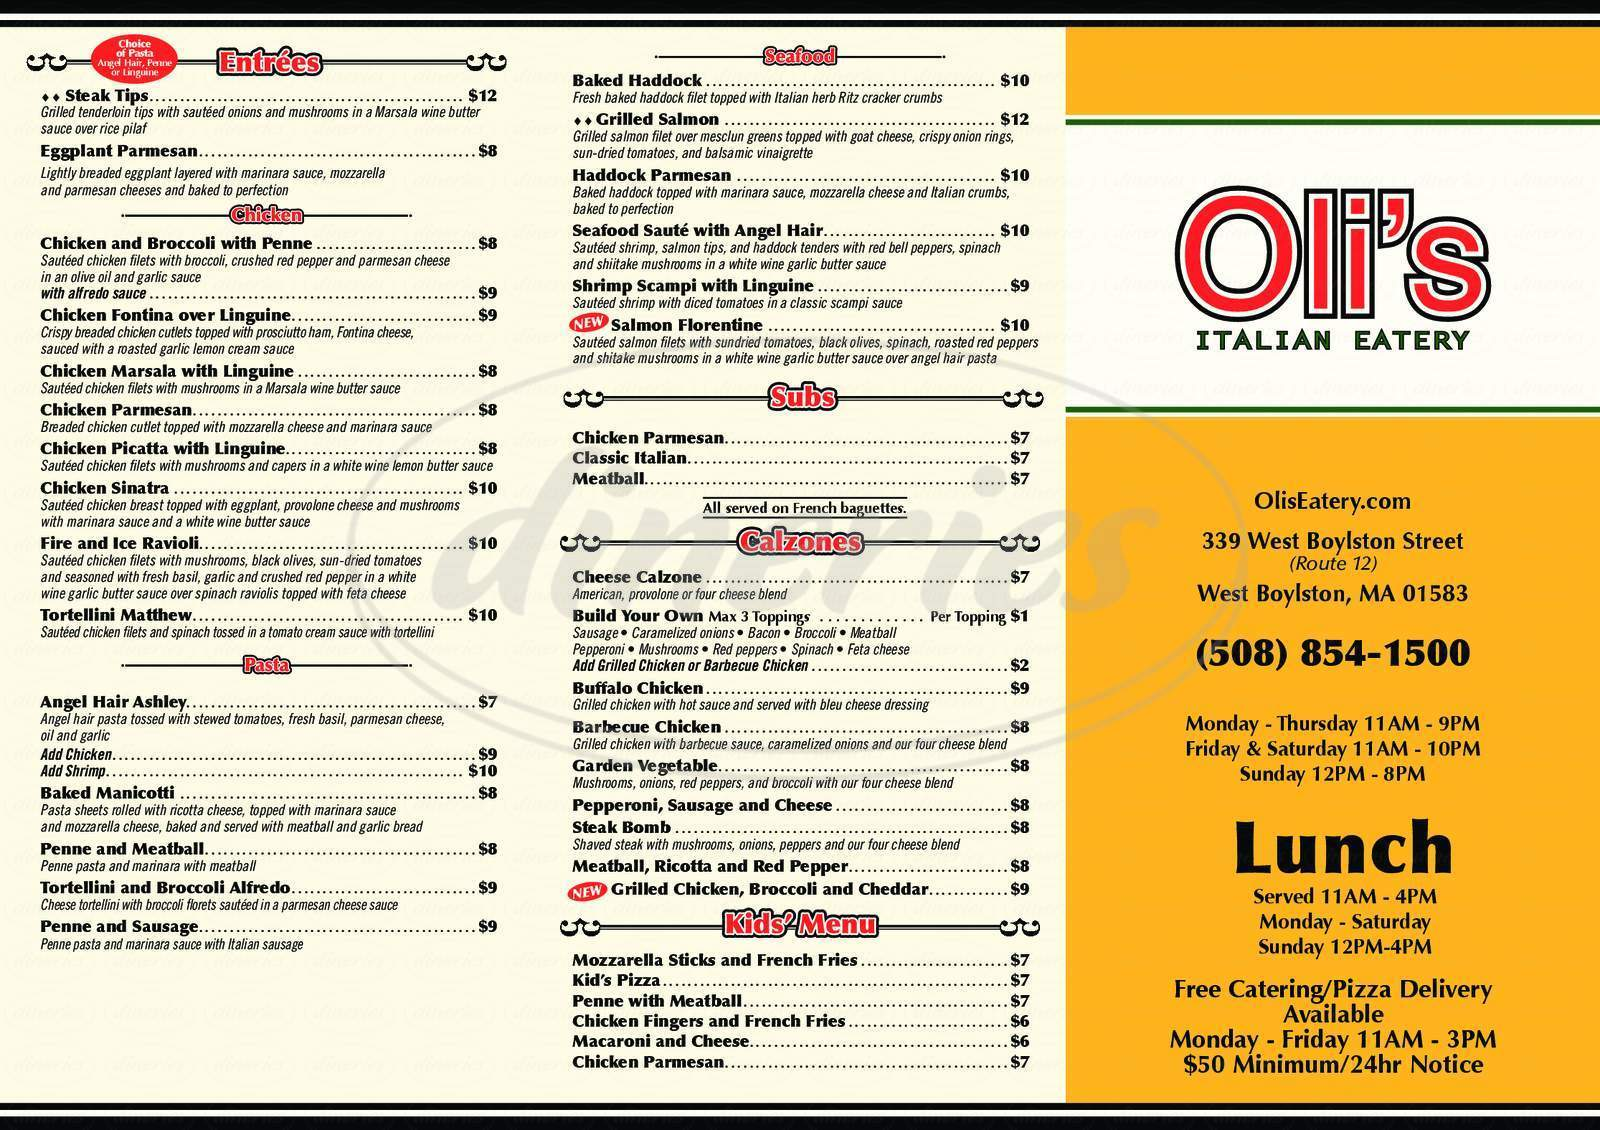 menu for Oli's Italian Eatery